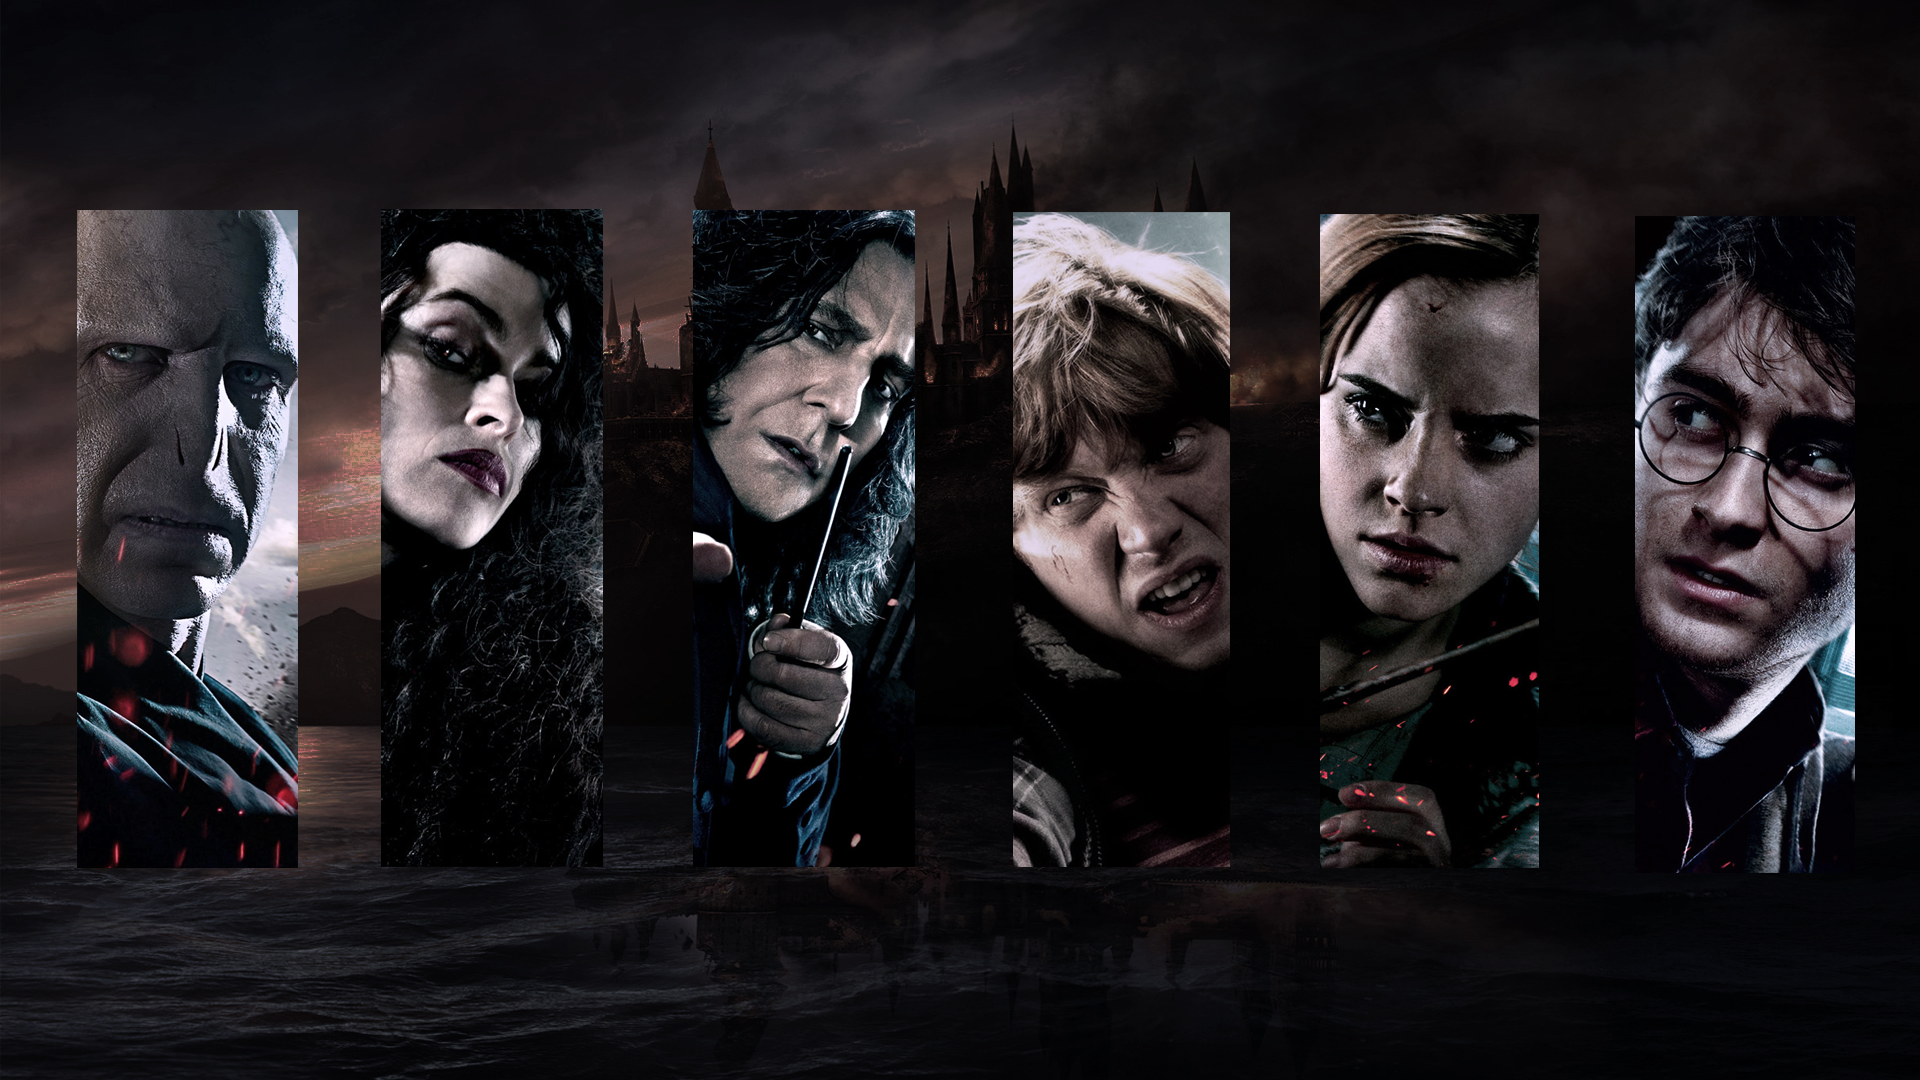 General 1920x1080 movies Bellatrix Lestrange Helena Bonham Carter Harry Potter and the Deathly Hallows Lord Voldemort Harry Potter Emma Watson Hermione Granger Severus Snape Daniel Radcliffe collage Hogwarts